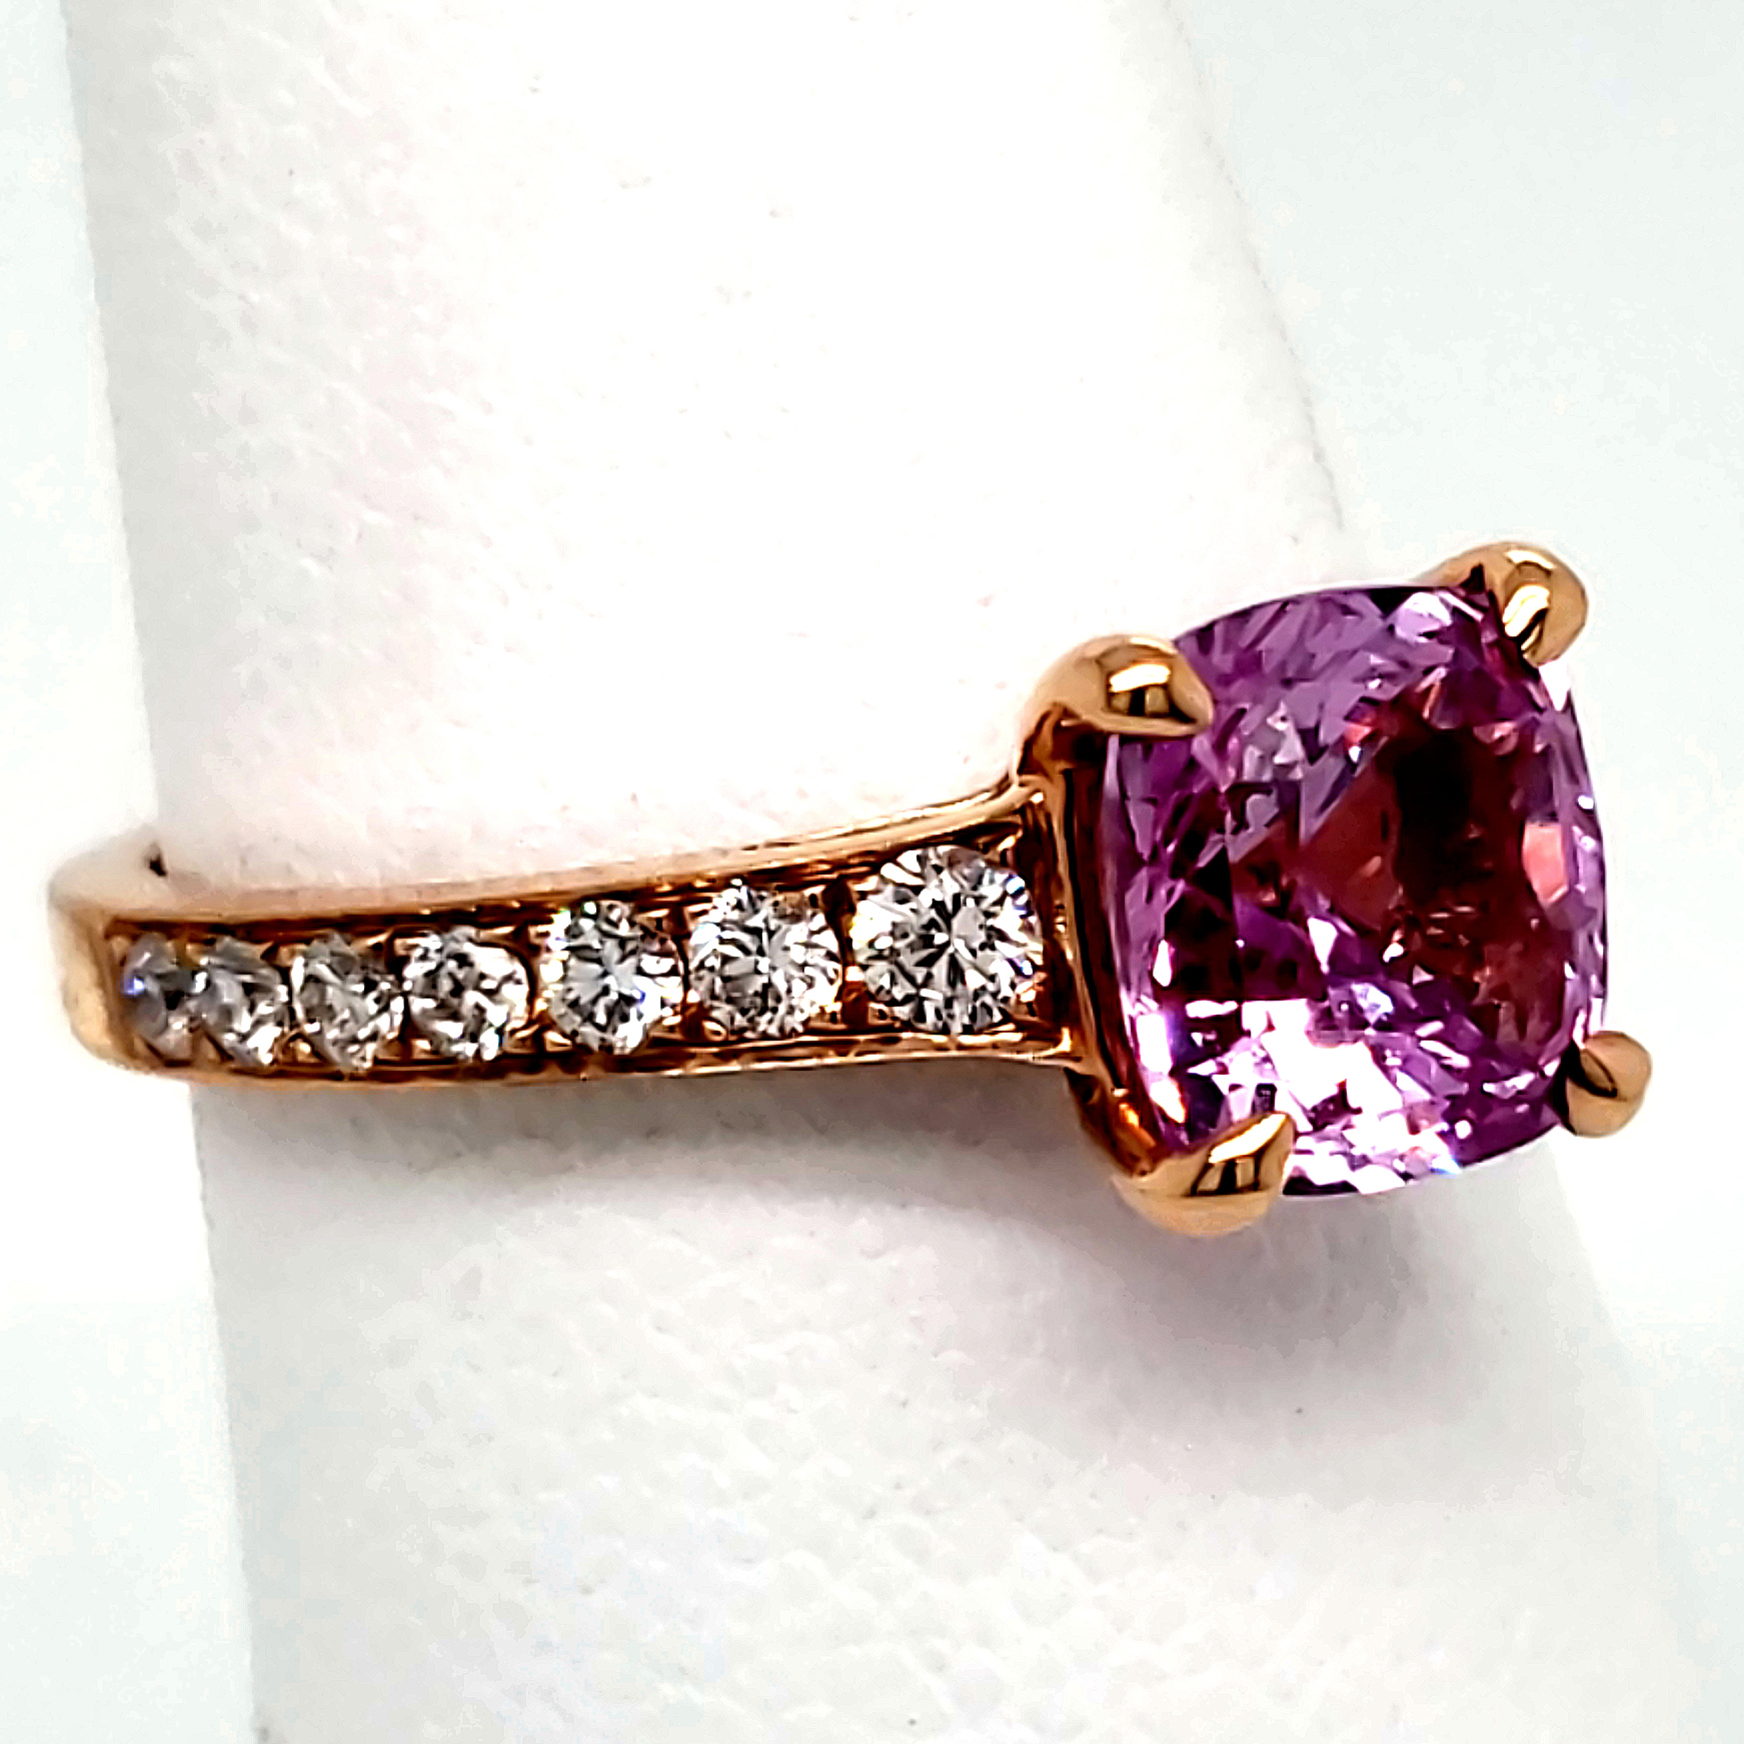 2.13 ct. Pink Sapphire Ring